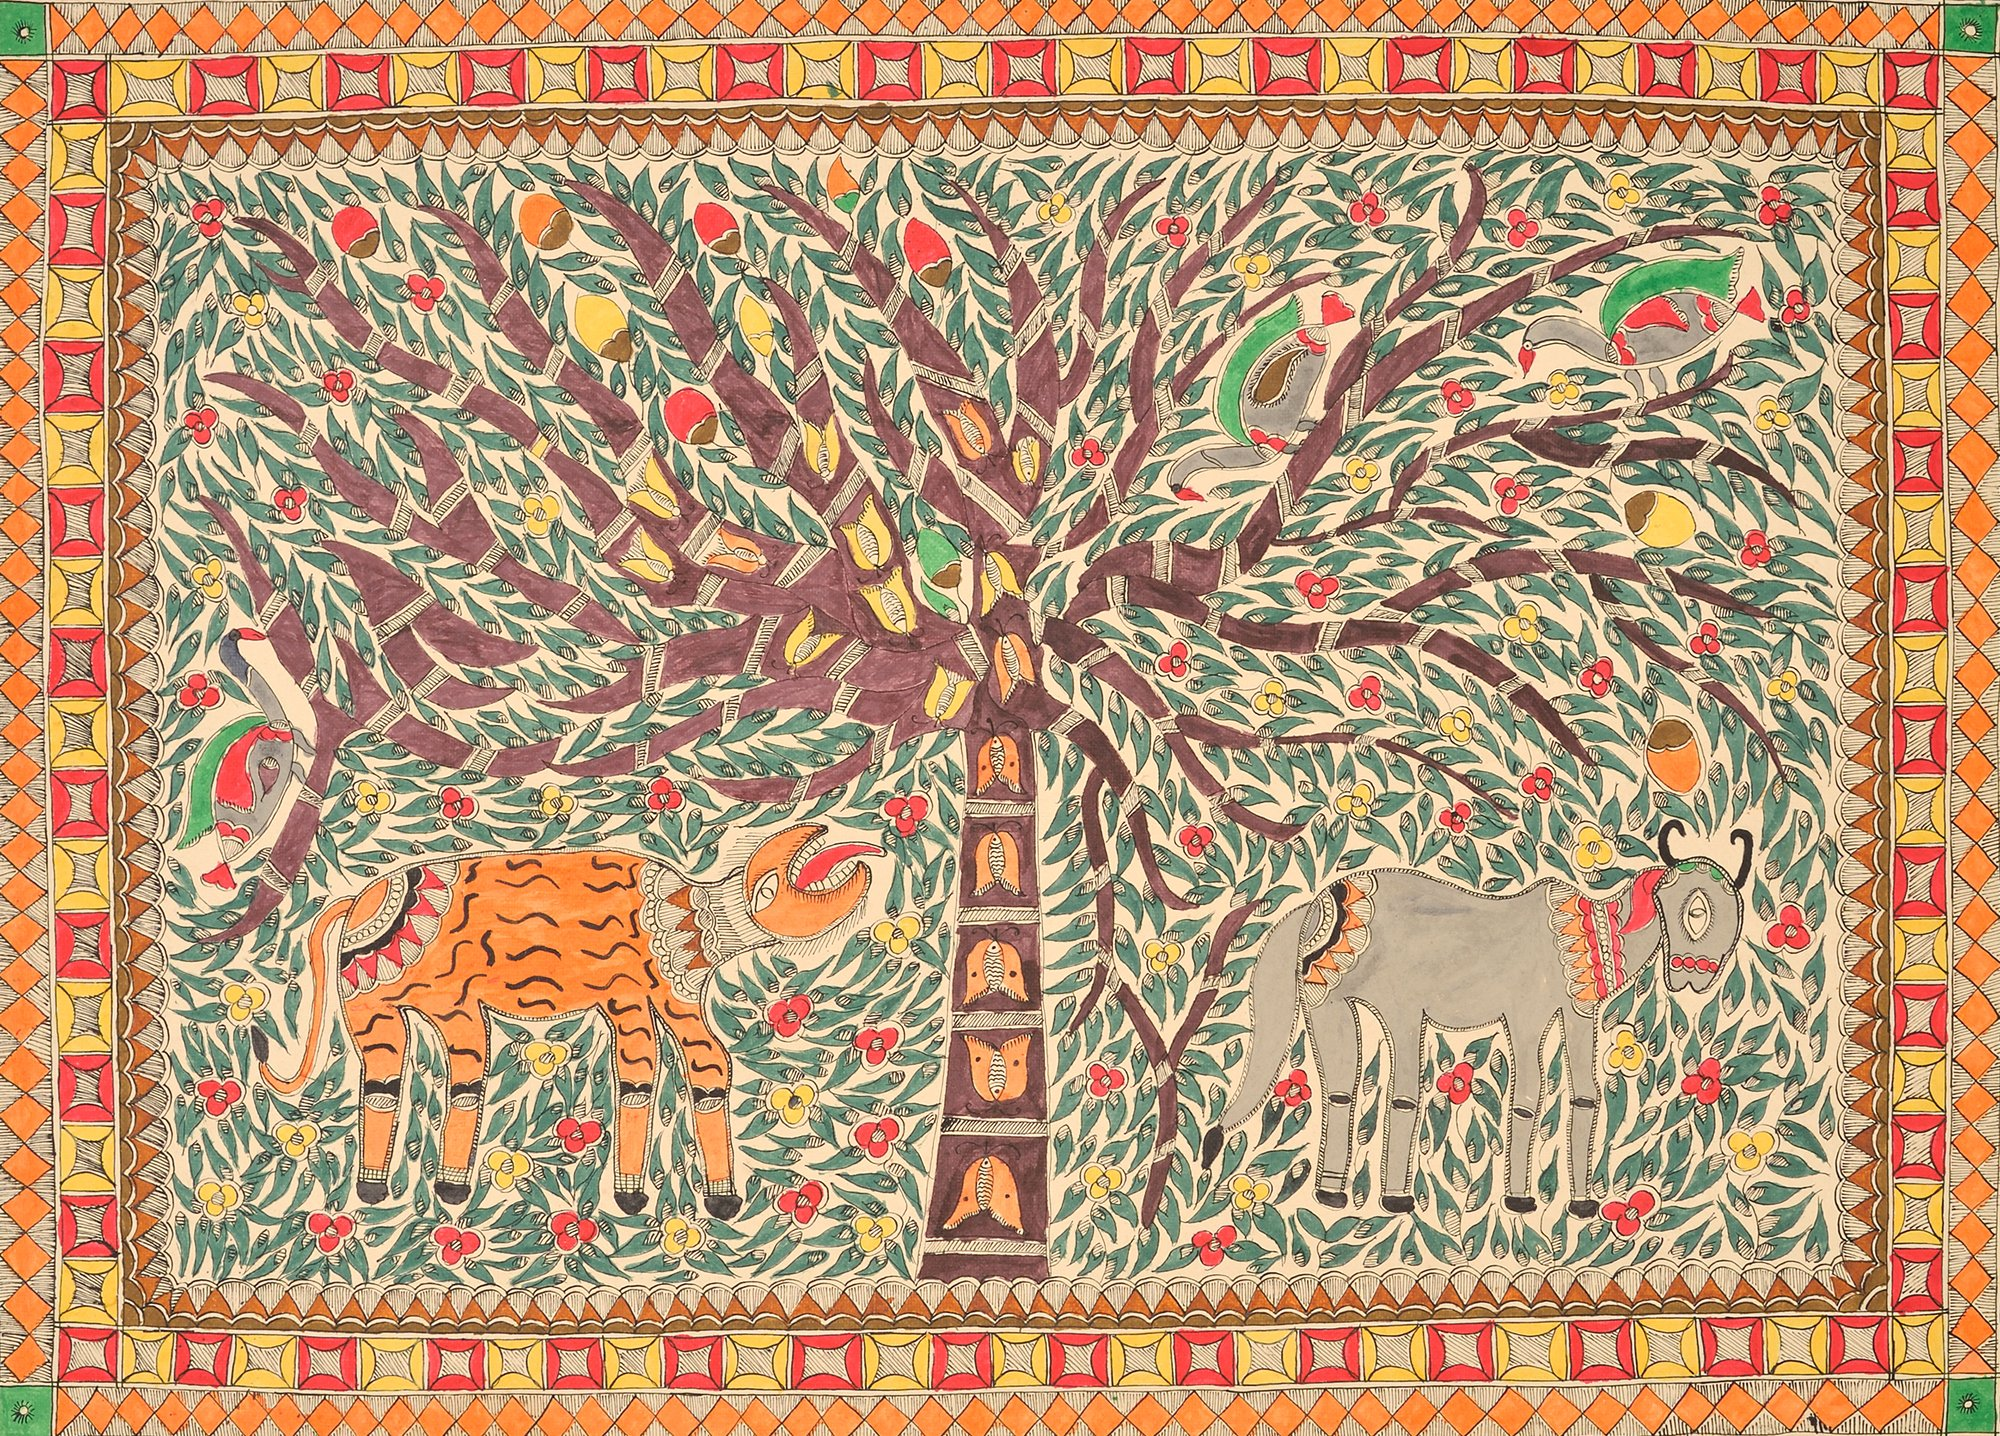 Tiger and Cow under a Tree - Madhubani Painting on Hand Made Paper - Folk Painting